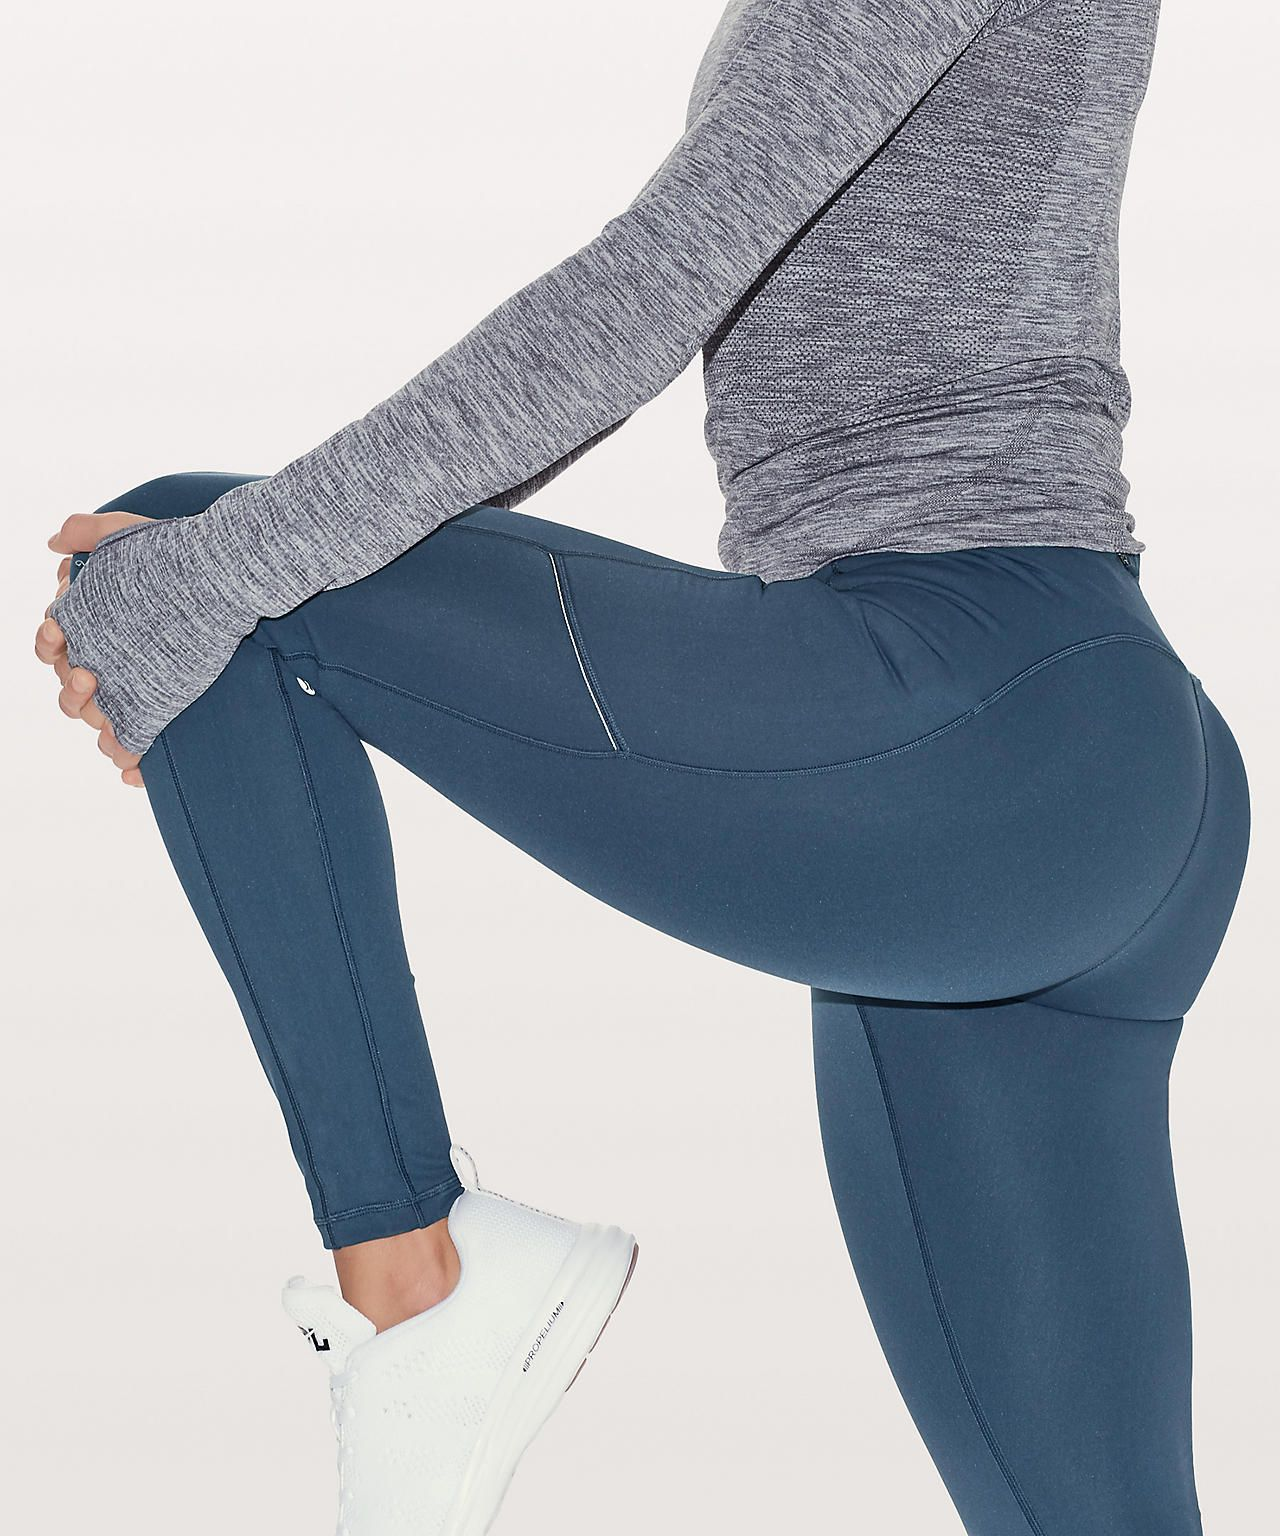 Nike Sportswear Tech Fleece Women's Pants Size Pants for